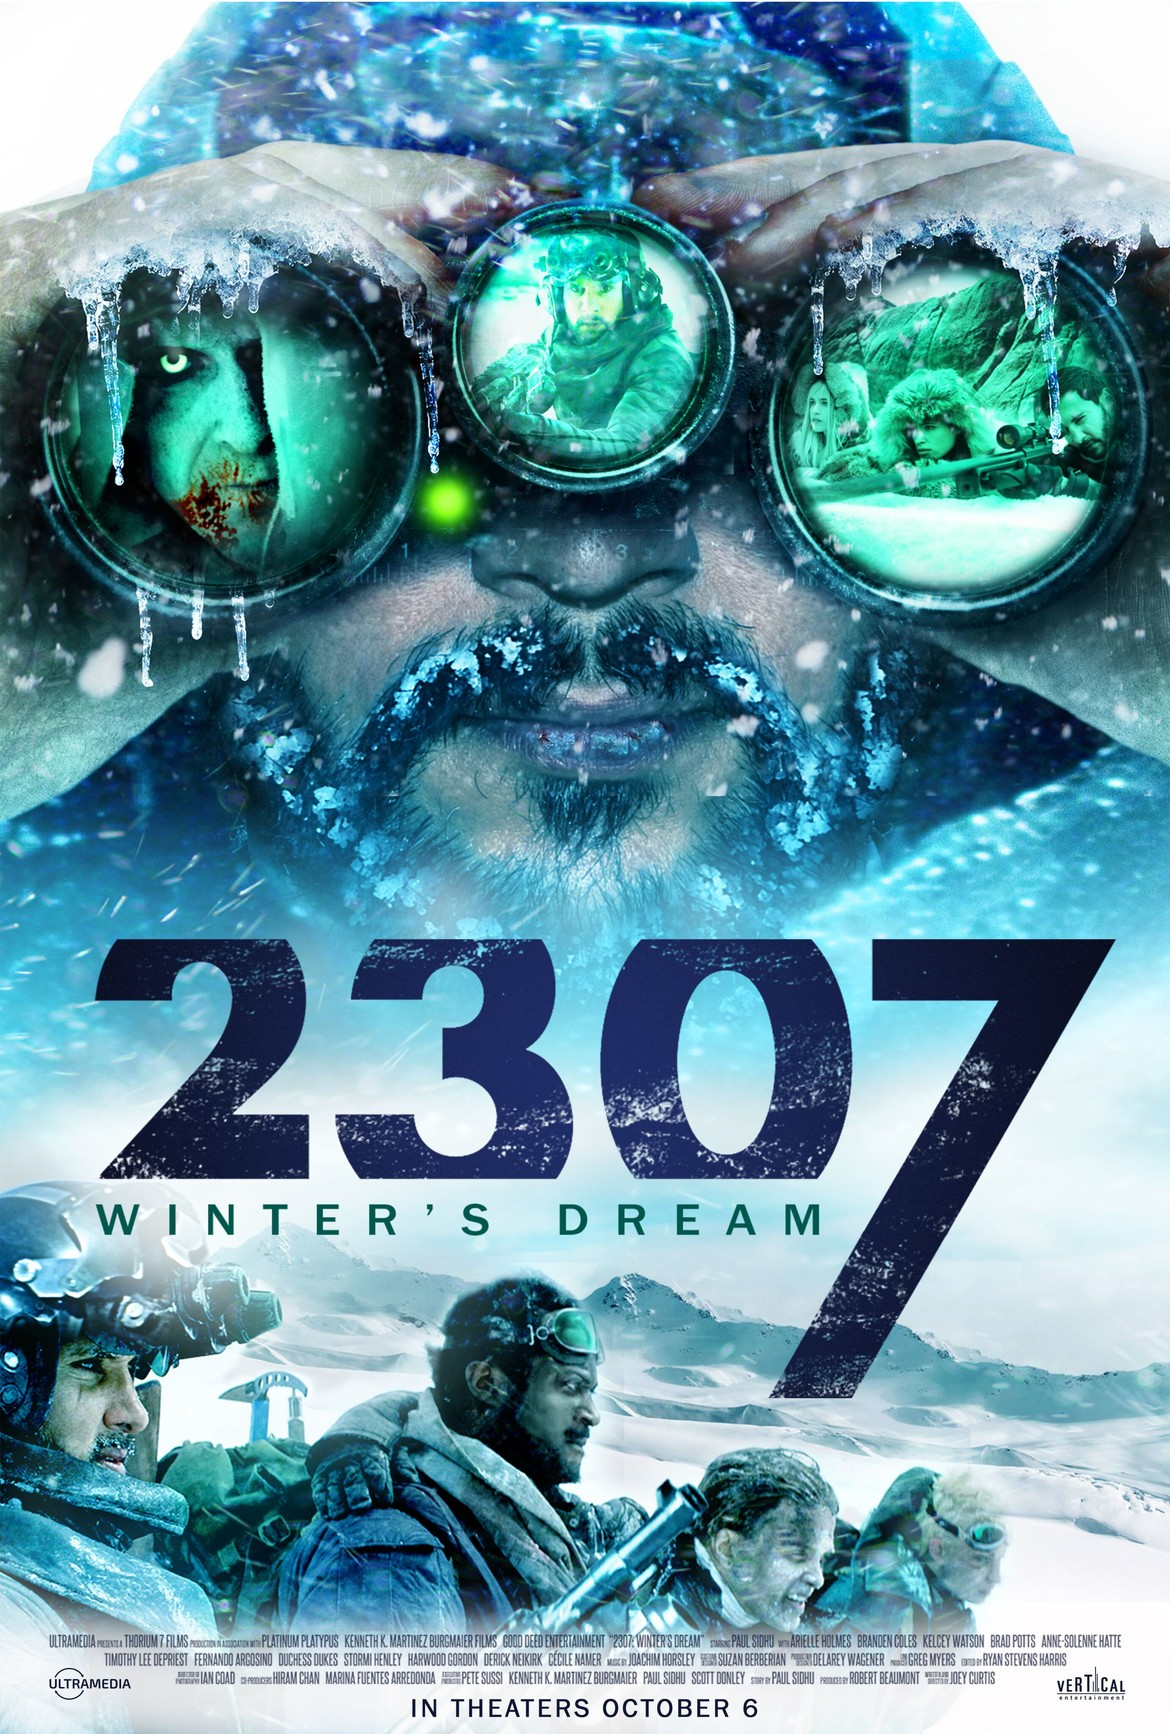 2307WintersDream_Theatrical_Poster.jpg